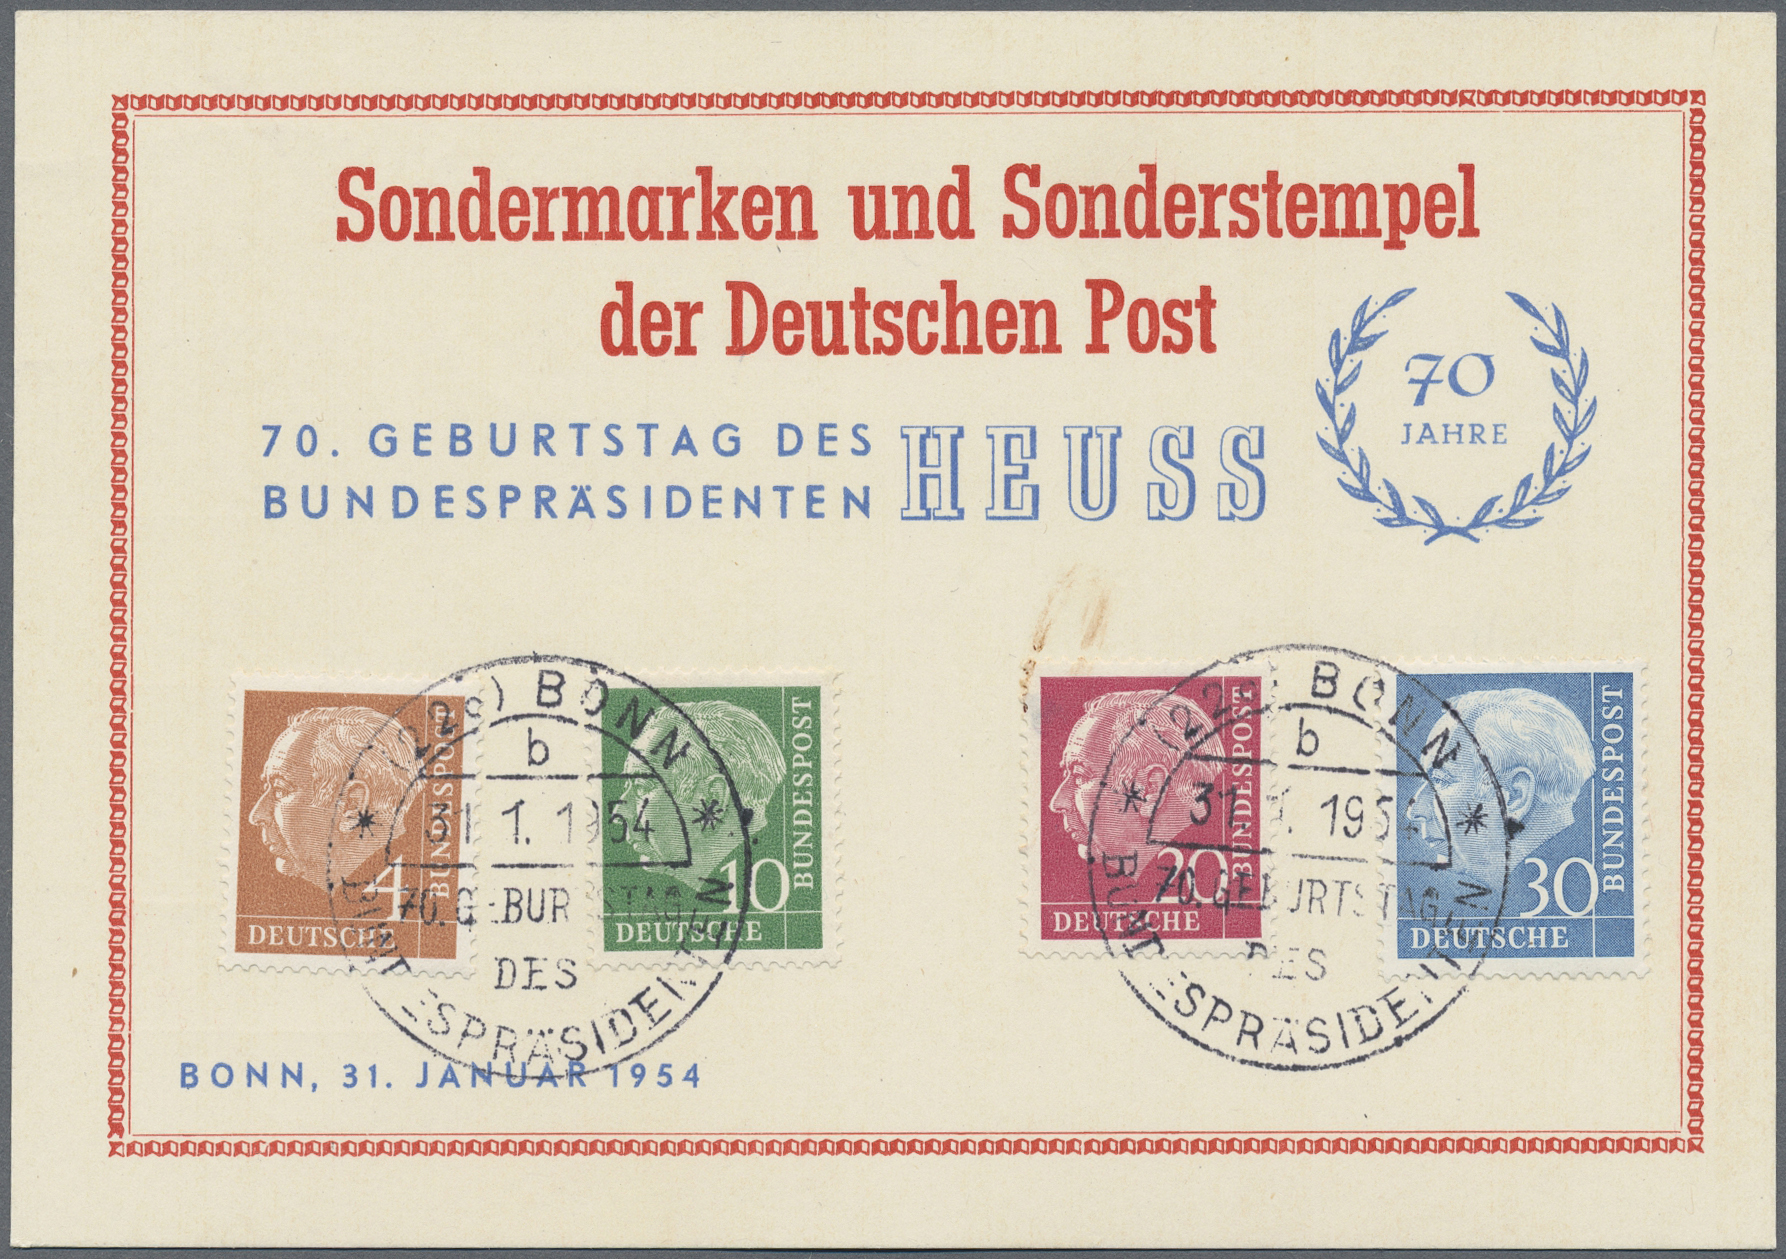 Lot 38081 - bundesrepublik und berlin  -  Auktionshaus Christoph Gärtner GmbH & Co. KG Collections Germany,  Collections Supplement, Surprise boxes #39 Day 7